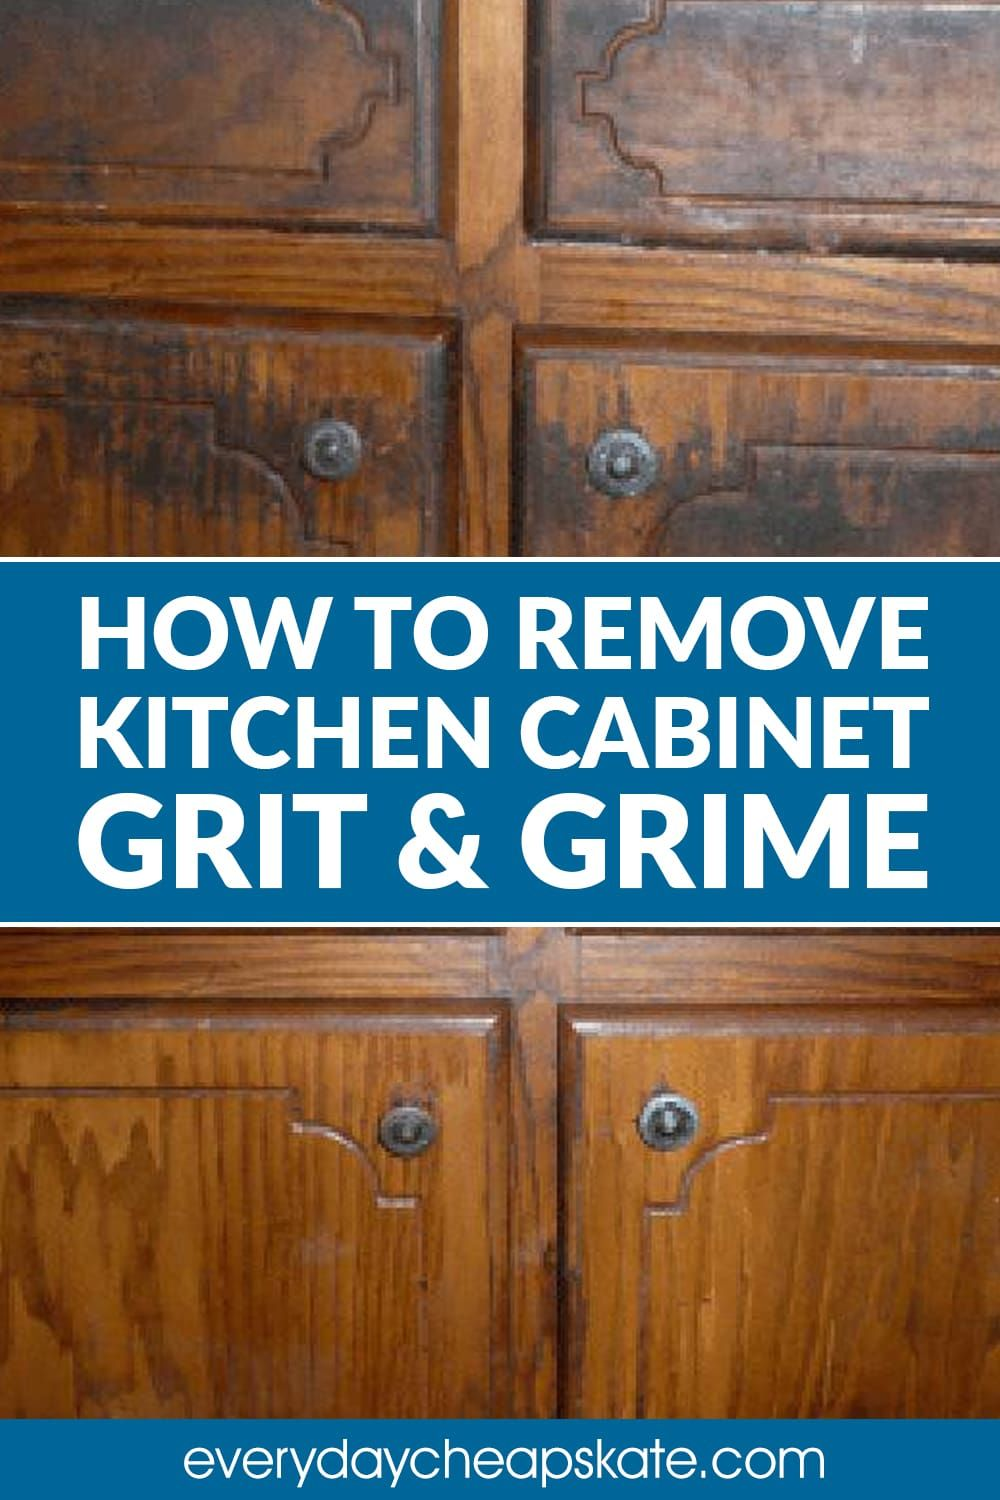 When Did You Last Look At Your Kitchen Cabinets Not A Passing Glance But An Up Close In 2020 How To Remove Kitchen Cabinets Cleaning Cabinets Cleaning Wood Cabinets